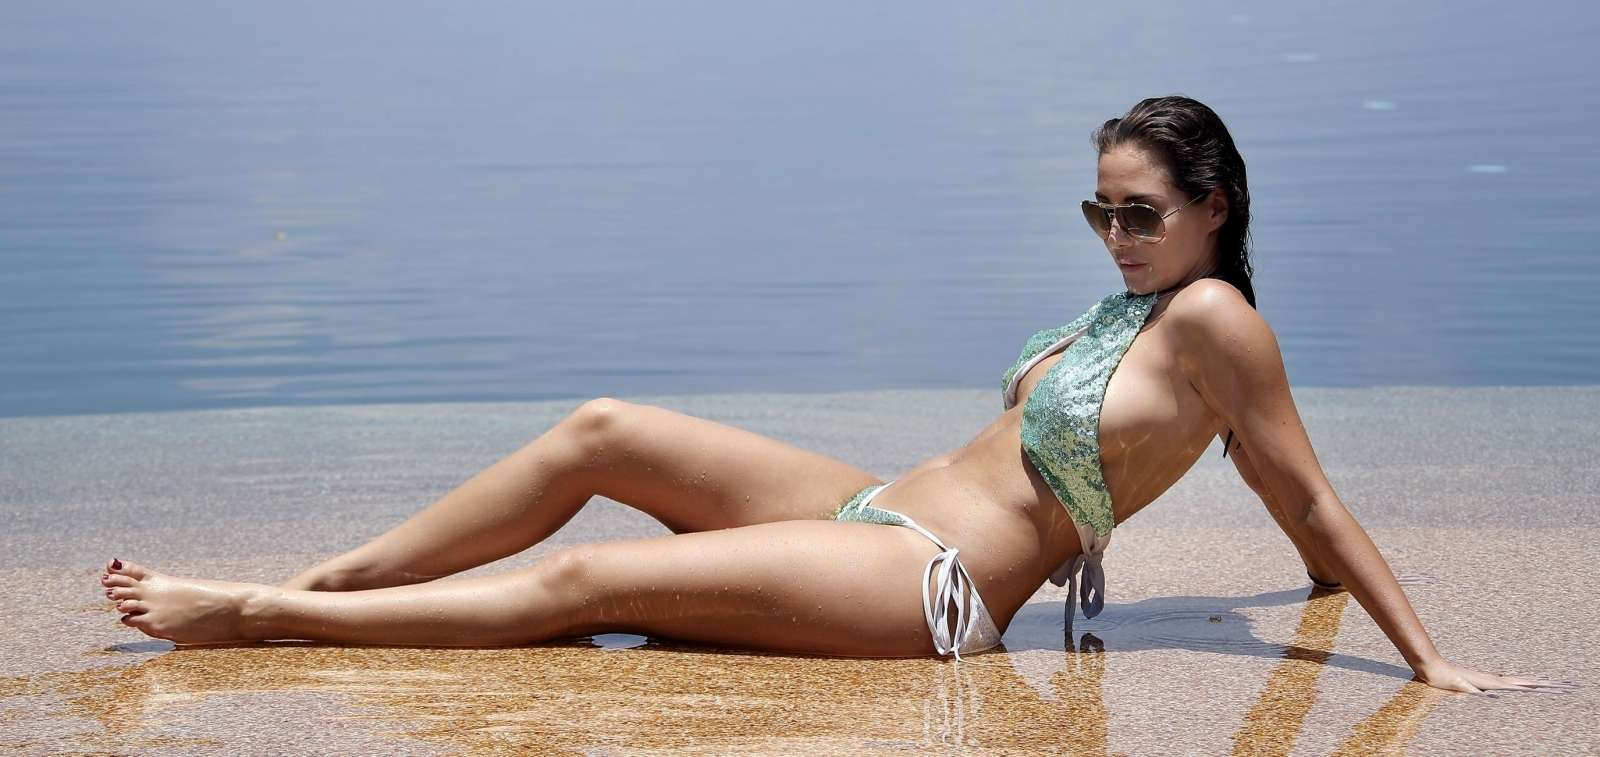 Chloe Goodman Hot Photo Gallery